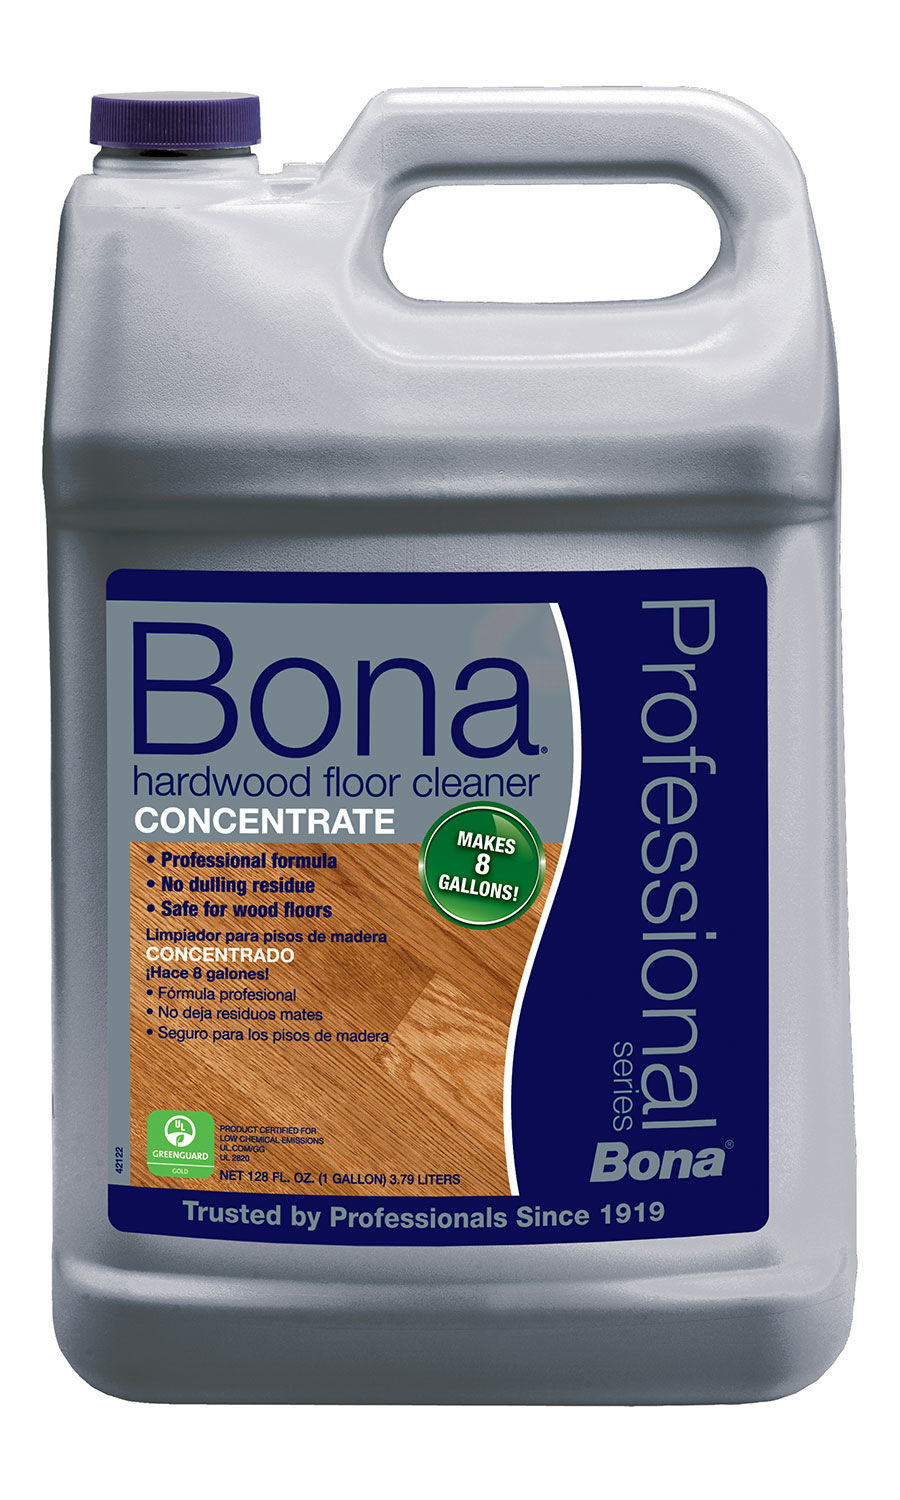 Bona pro series hardwood floor cleaner concentrate for Wood floor cleaner bona